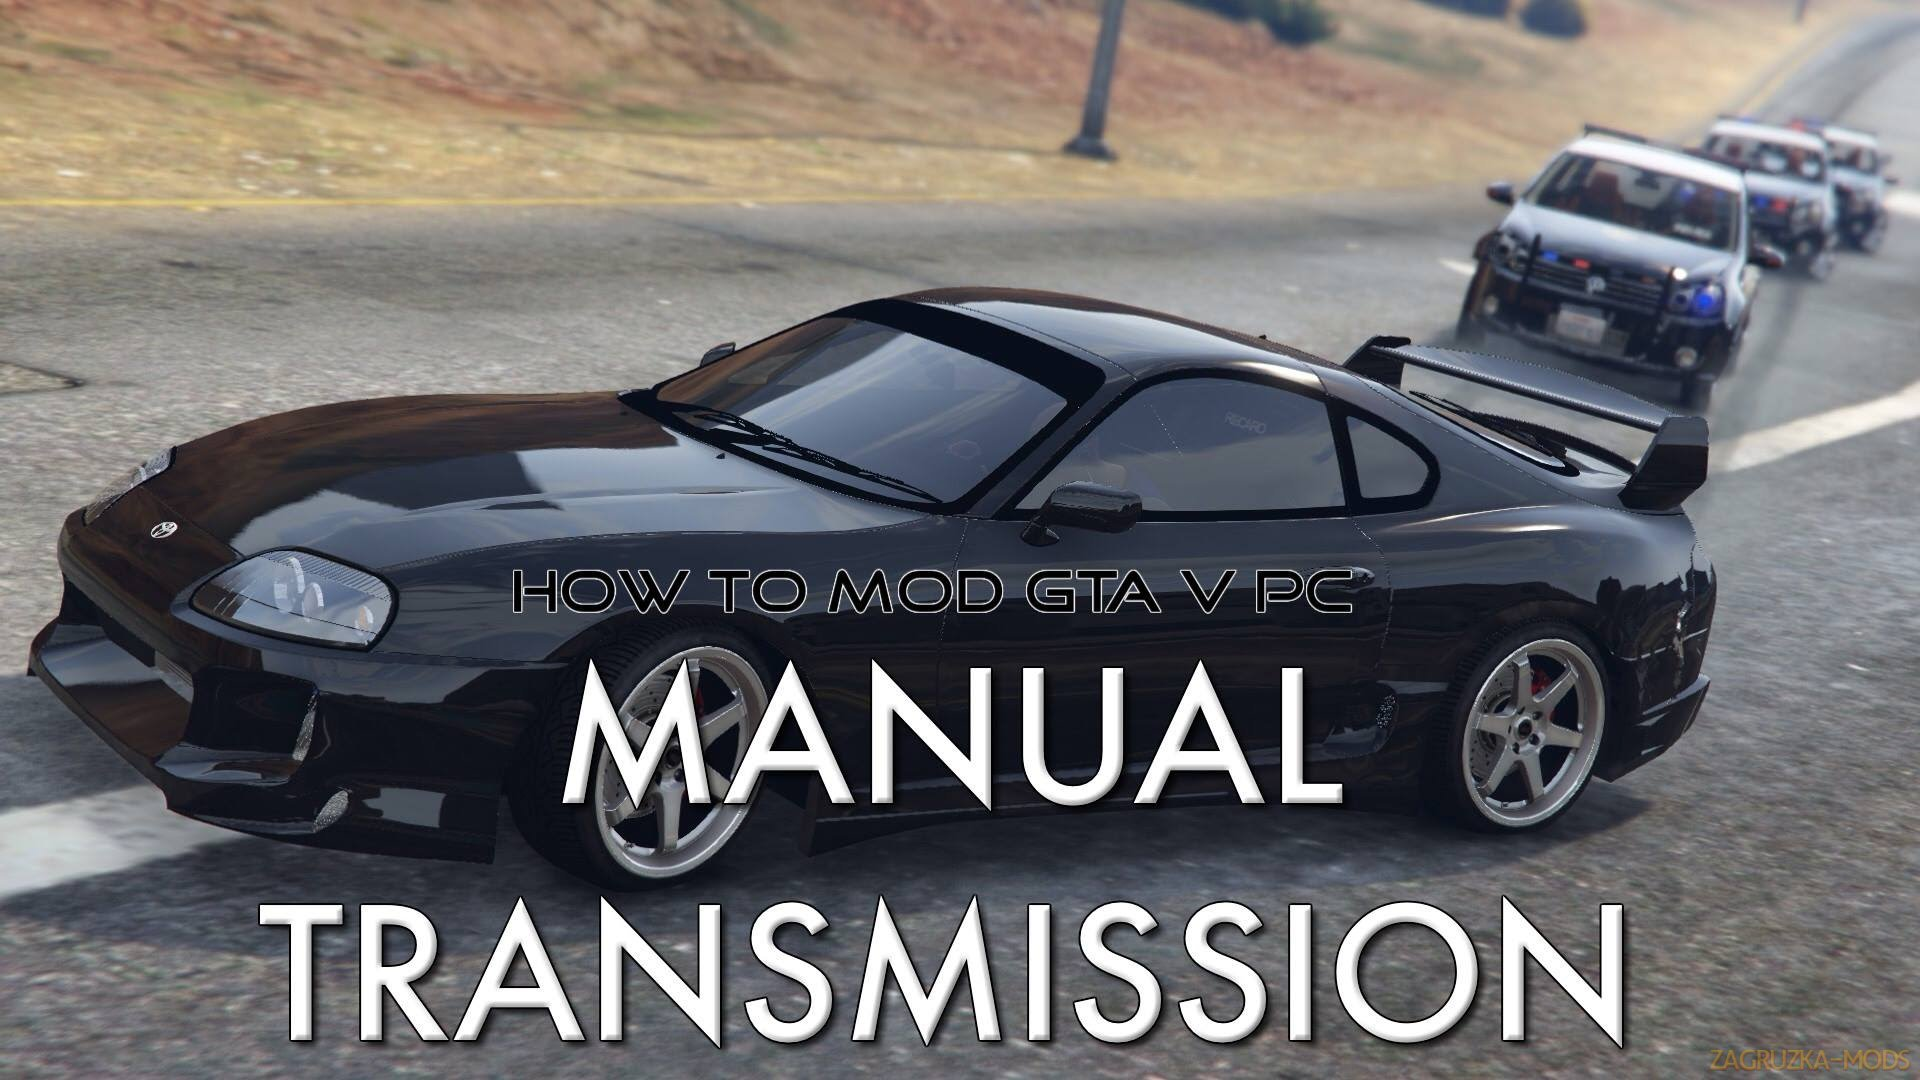 Manual Transmission & Steering Wheel v4.7.1 for GTA 5